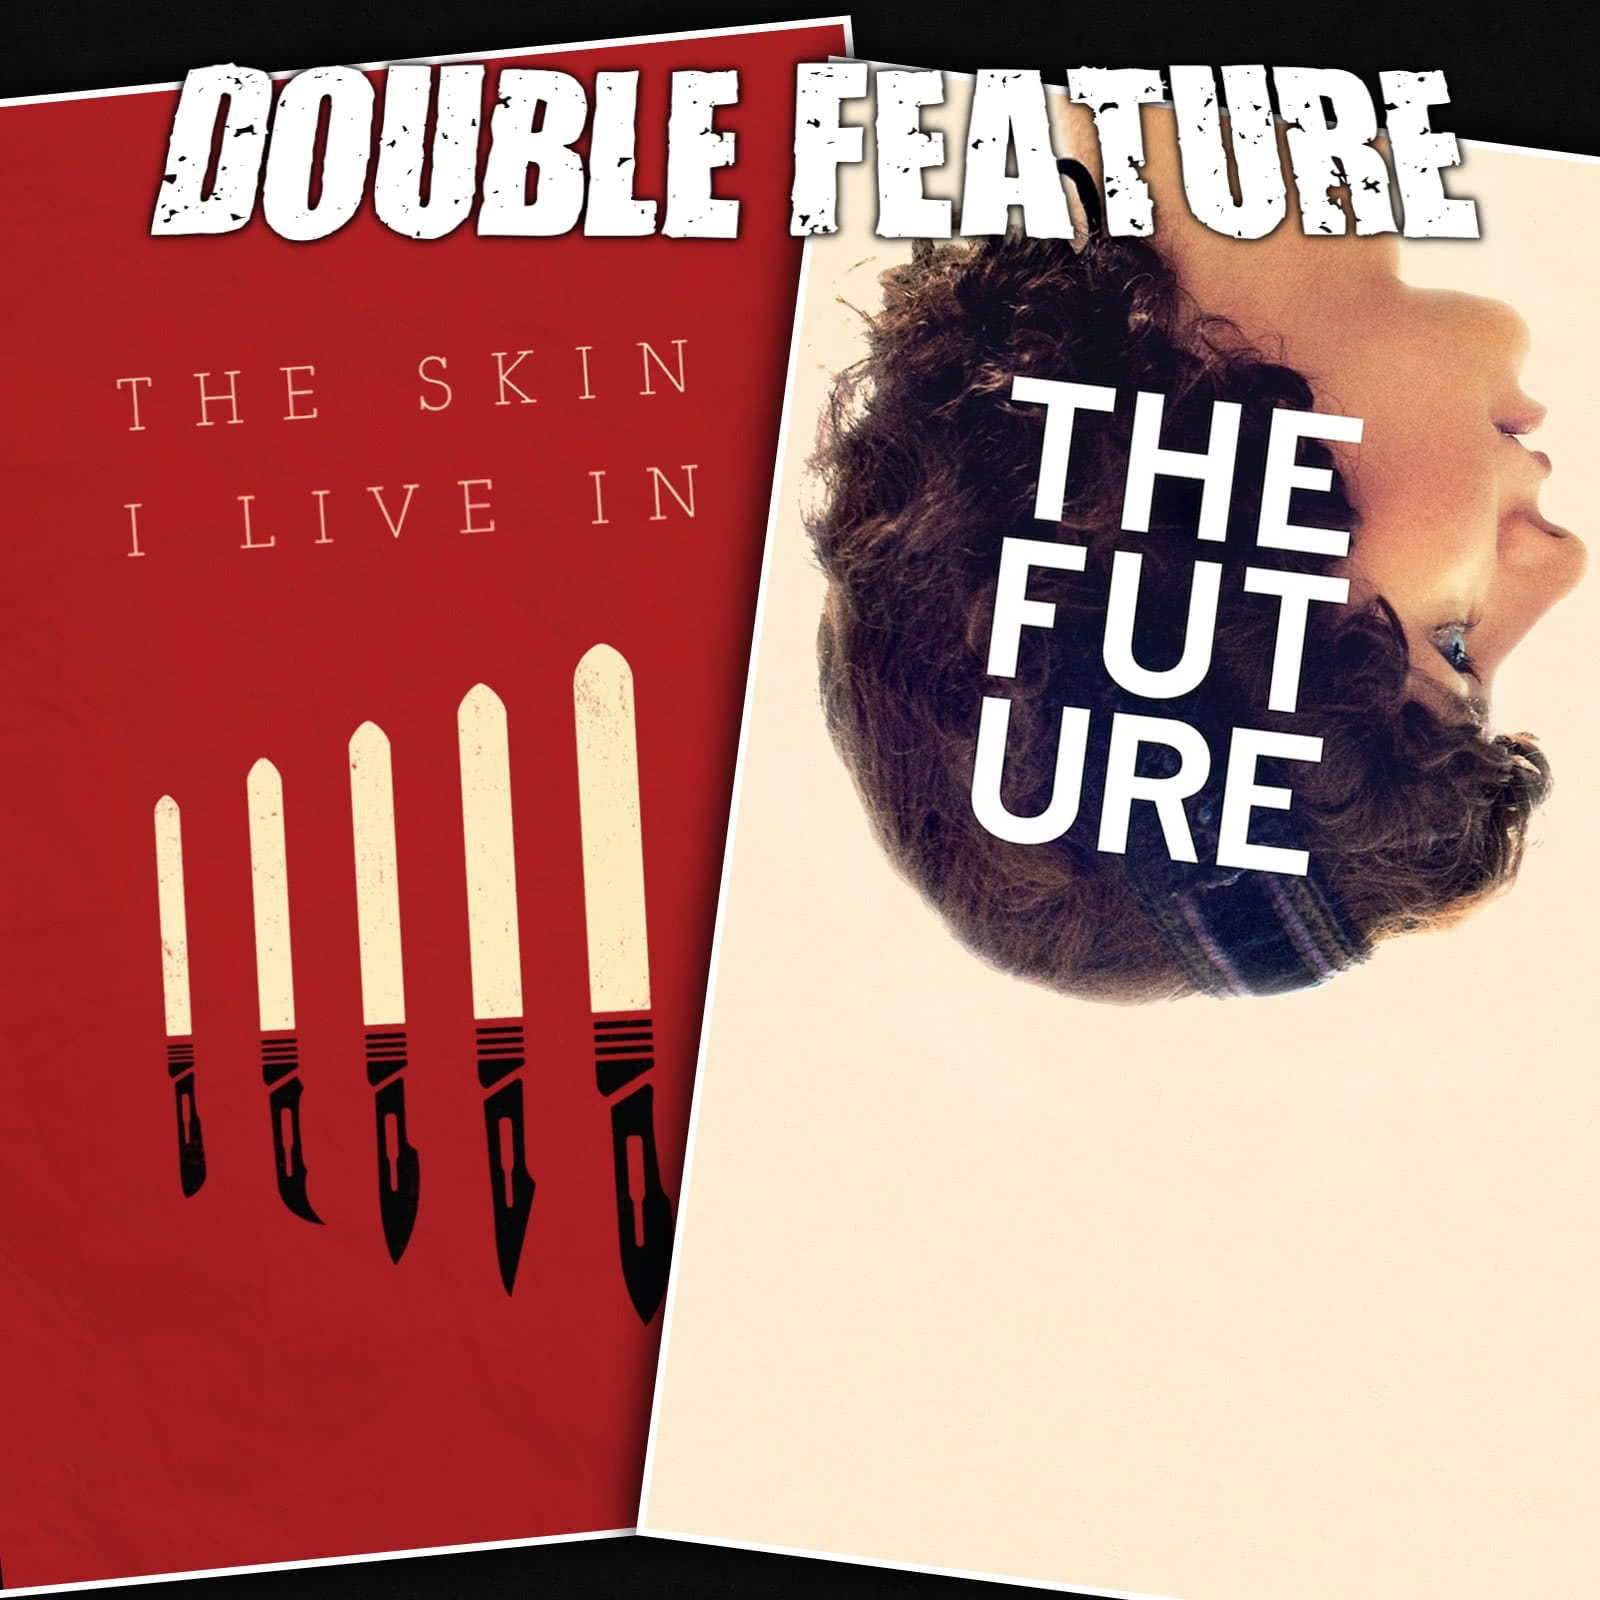 The Skin I Live In + The Future